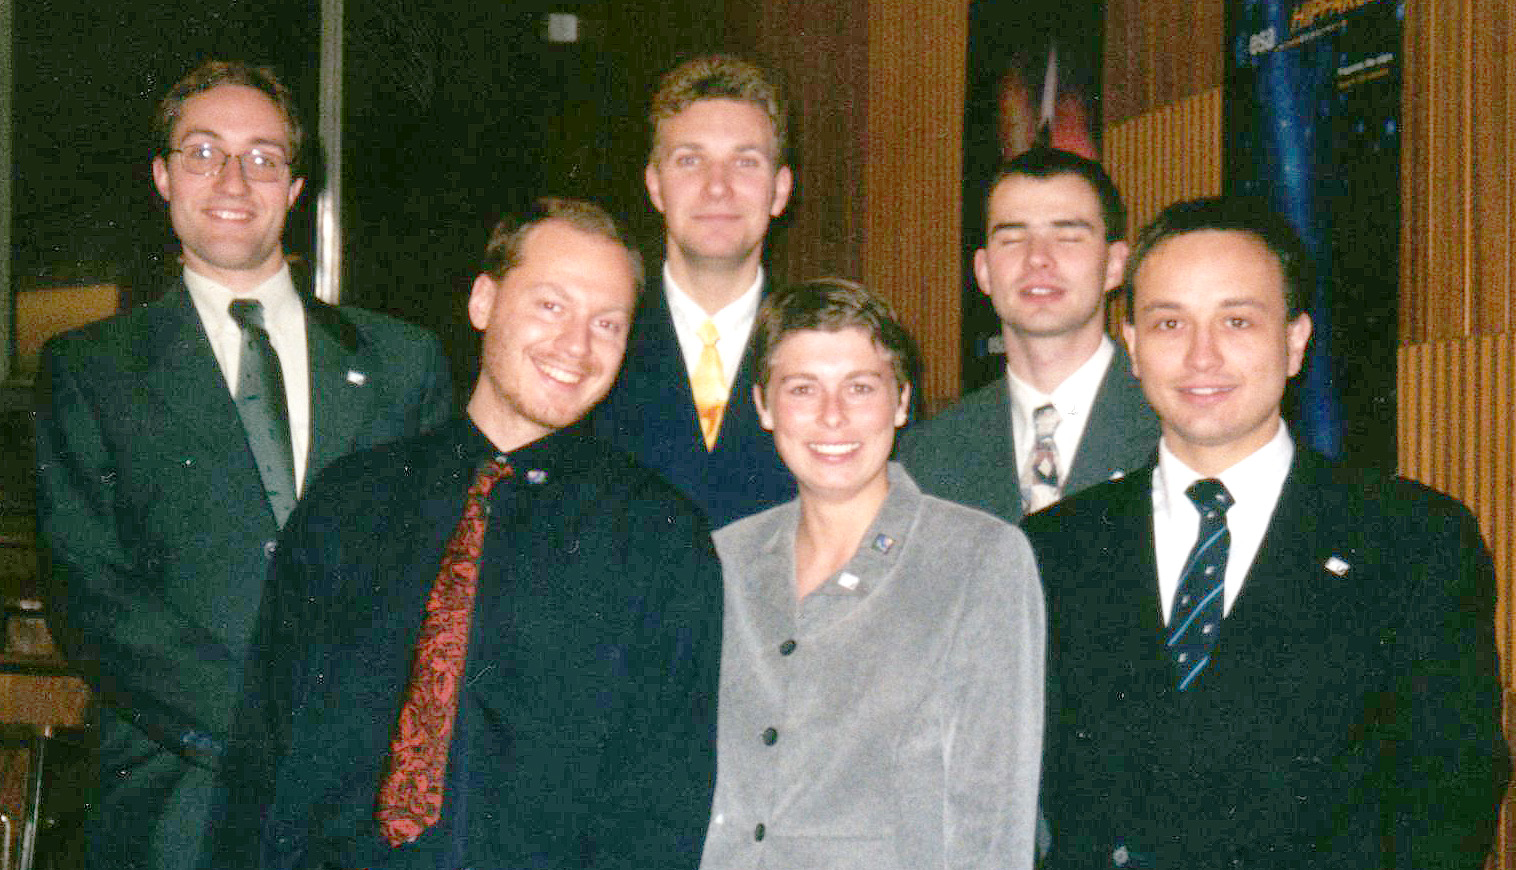 he first managing board of the Austrian Space Forum in 1998 (f.l.t.r.: G. Grömer, M. Biack, N. Frischauf, G. Weinwurm, G. Grabenhofer, W. Balogh)